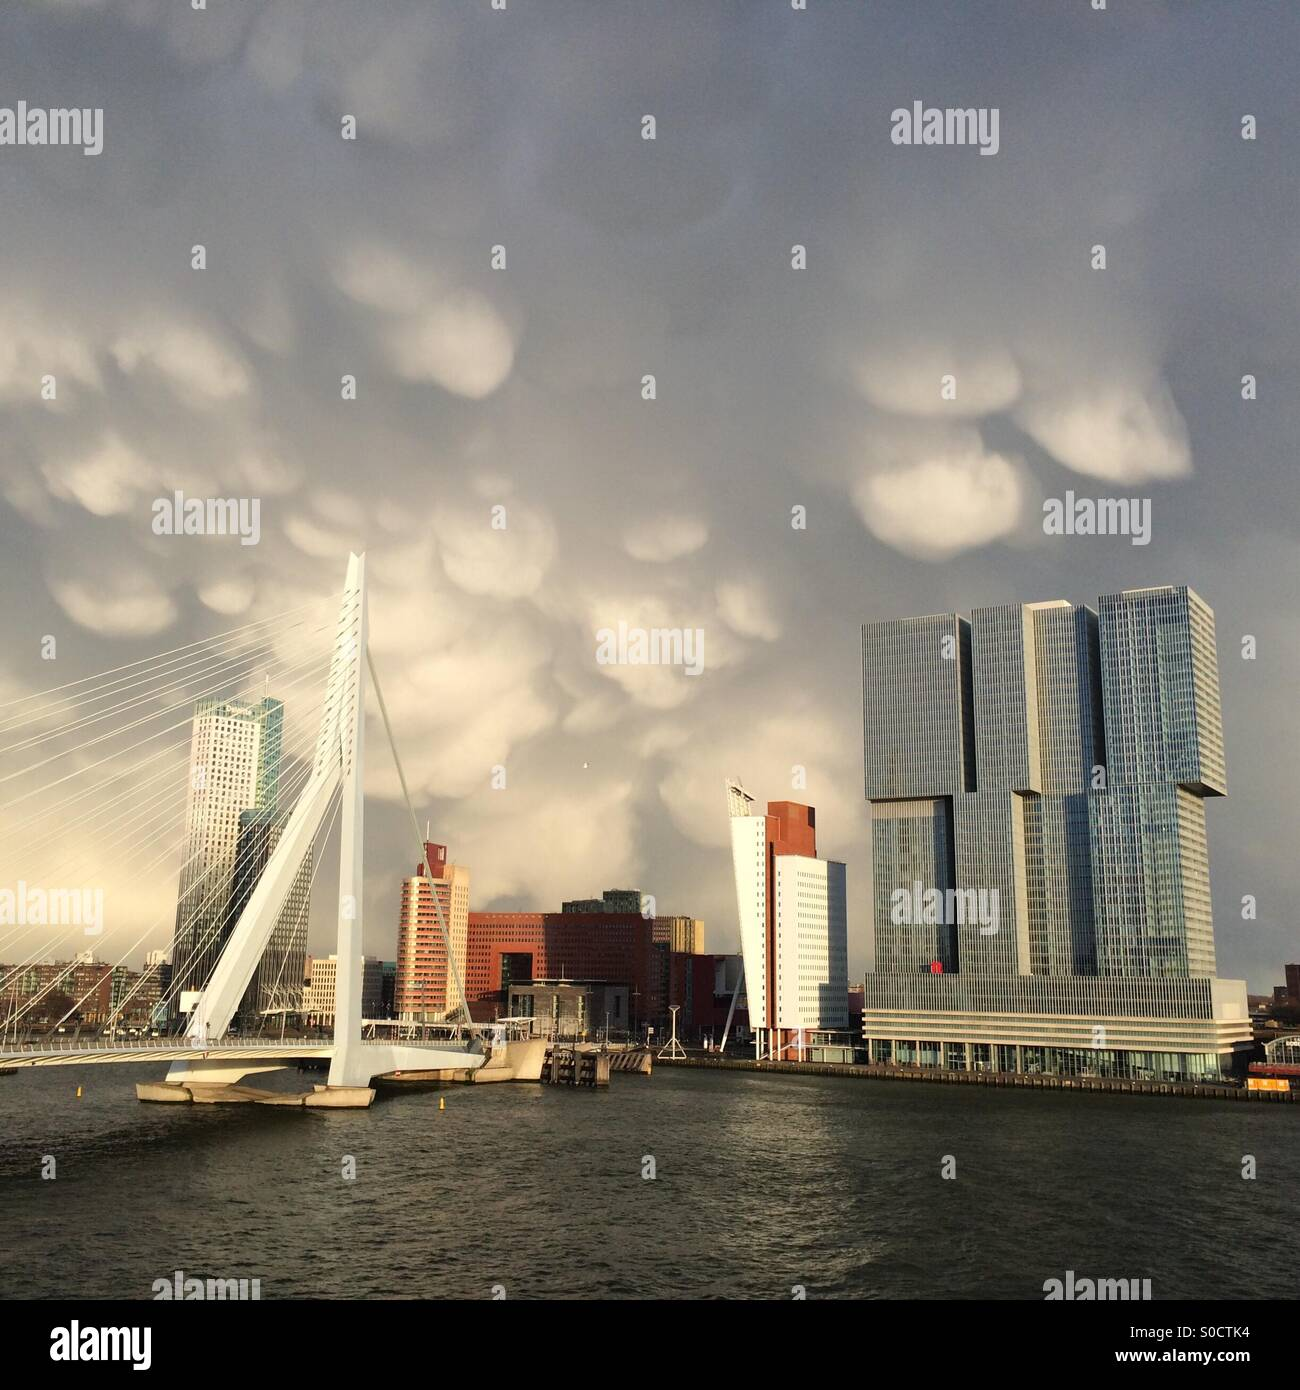 Funny clouds - Stock Image